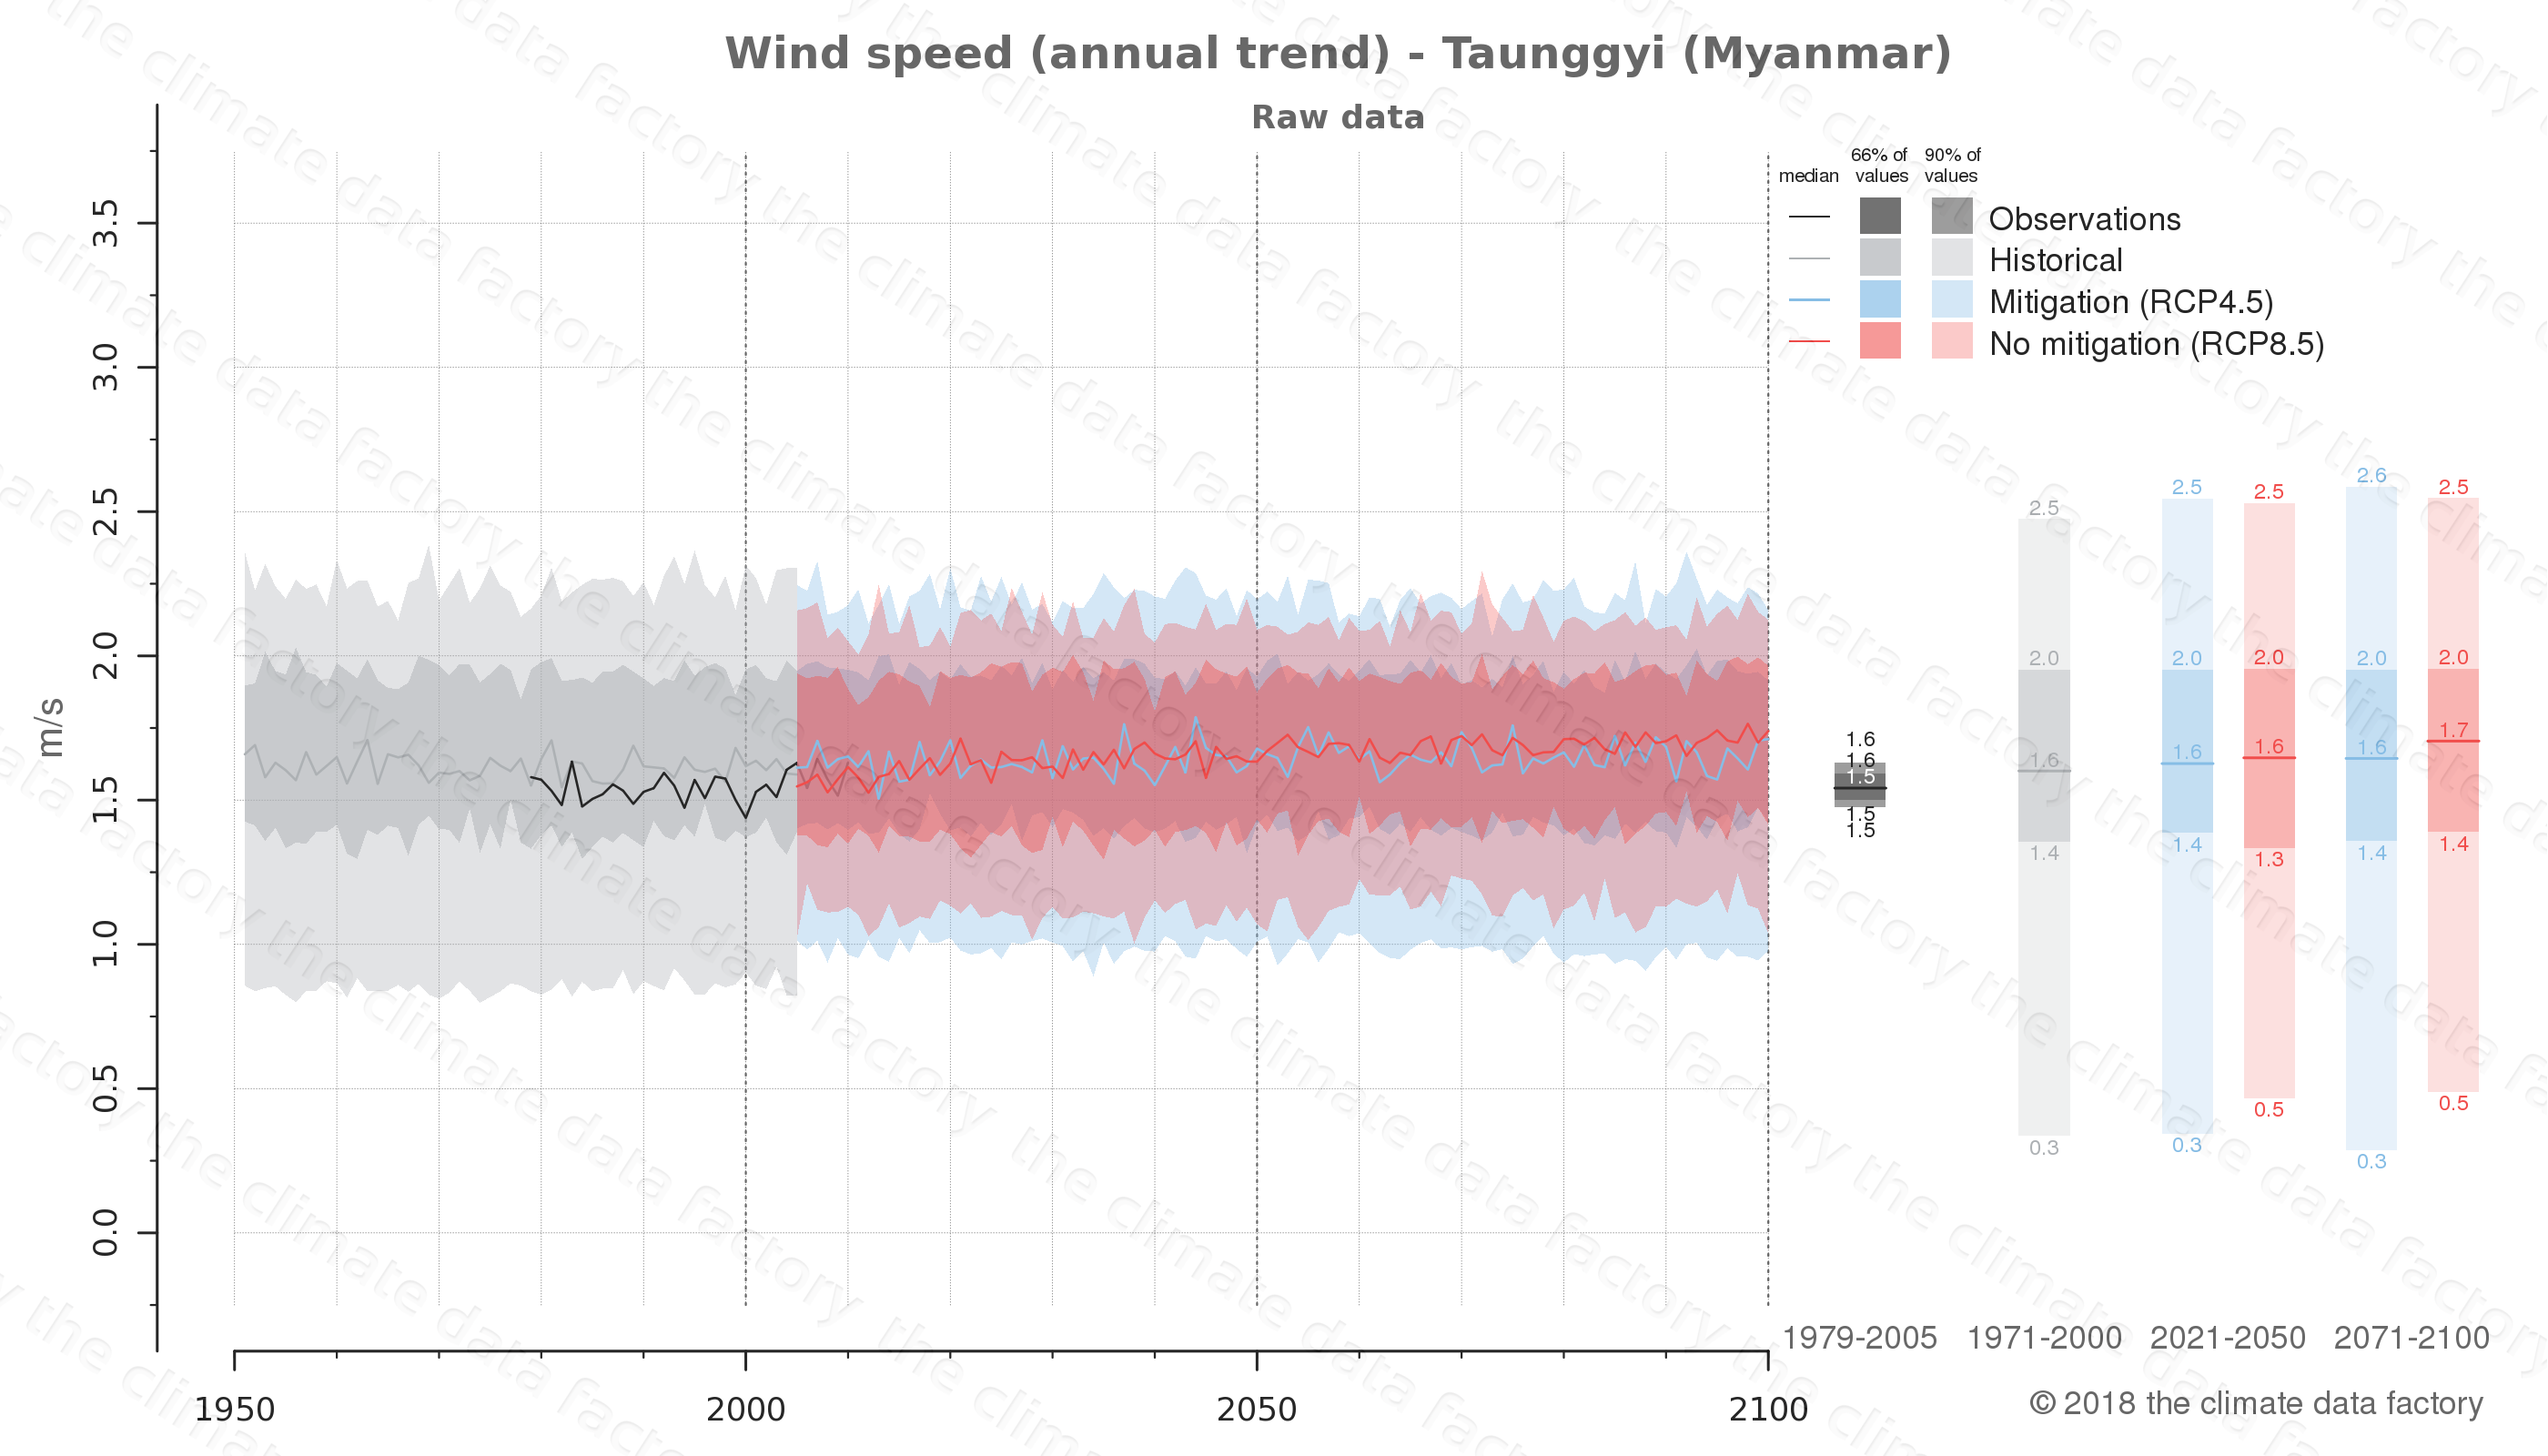 climate change data policy adaptation climate graph city data wind-speed taunggyi myanmar